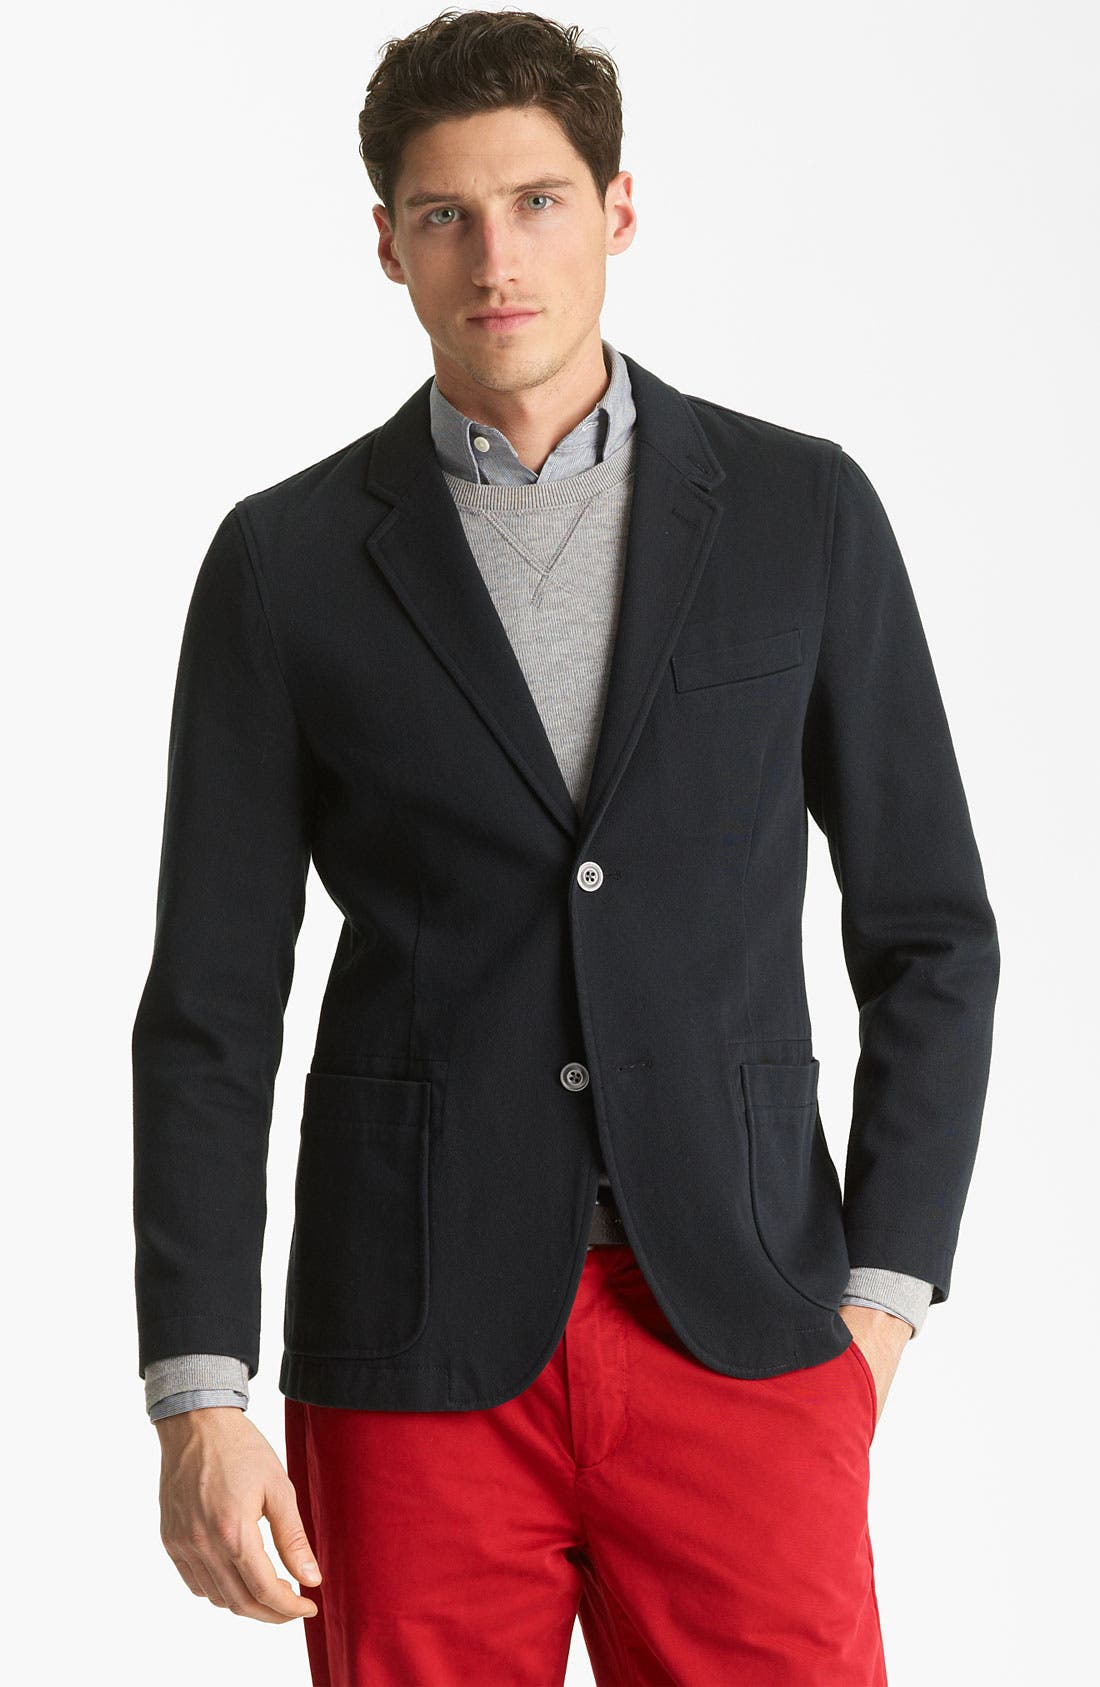 Alternate Image 1 Selected - Jack Spade 'Sanborn' Twill Cotton Blazer